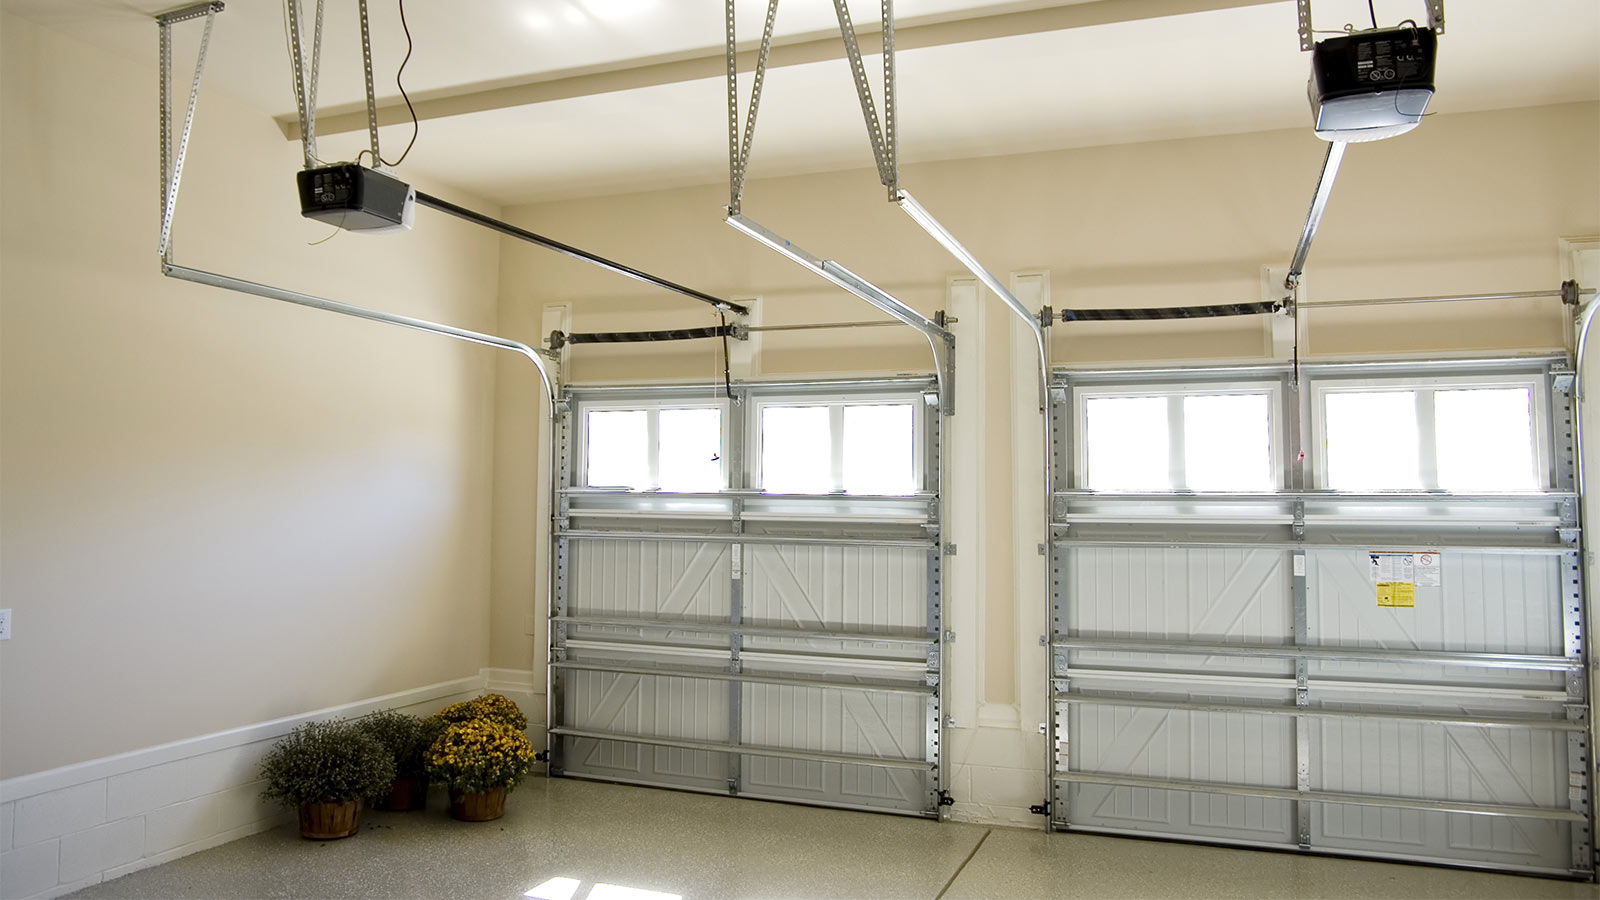 Sectional Garage Doors from High Speed Roller Shutters Kent suppliers.